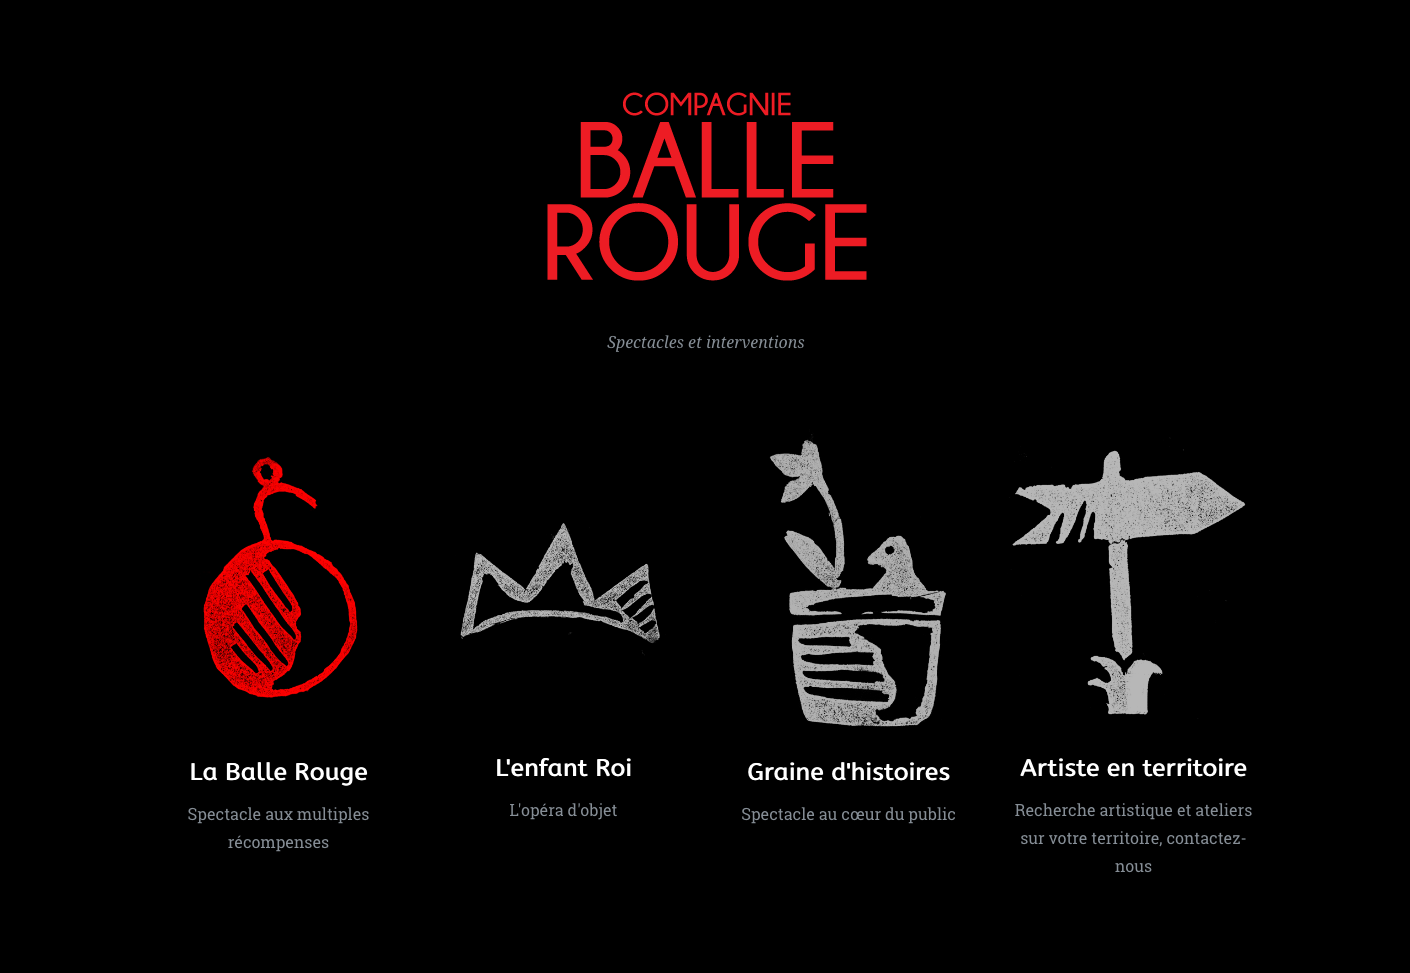 Compagnie Balle Rouge